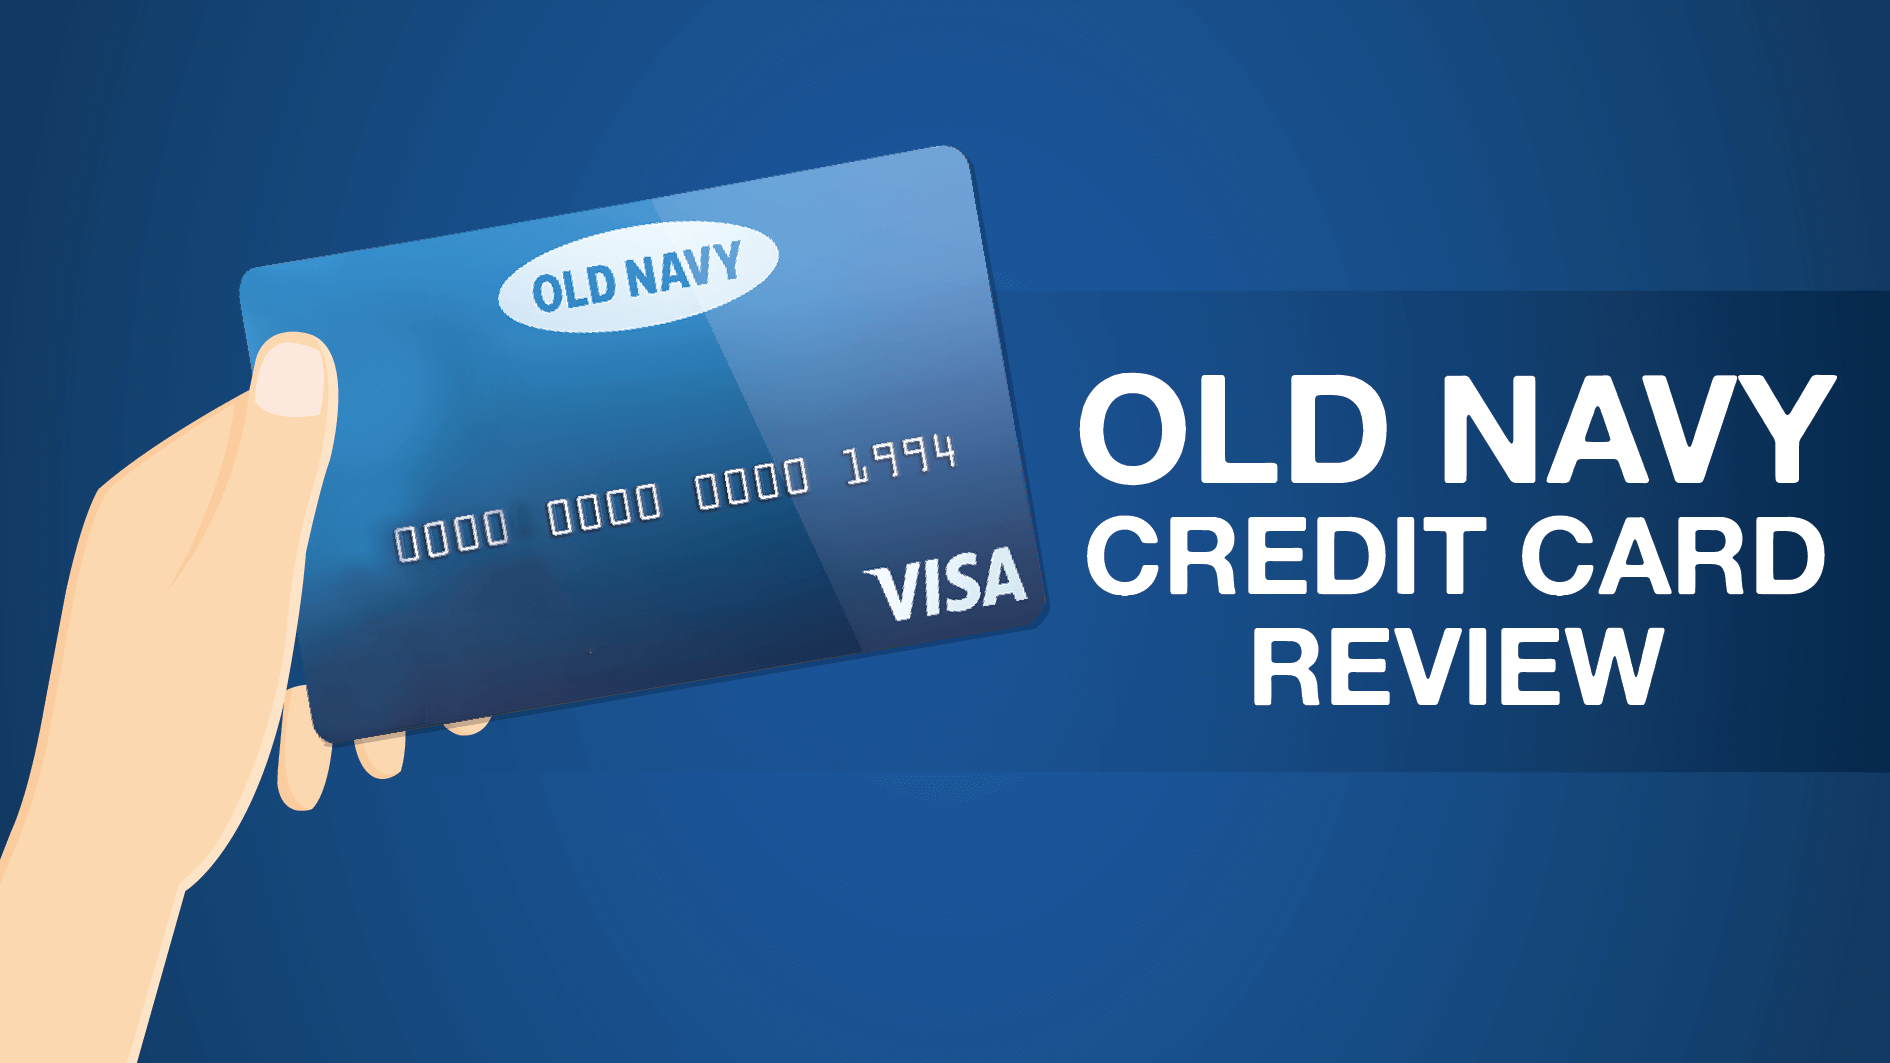 Capital One Auto Loan Payment >> Old Navy Credit Card Review - CreditLoan.com®